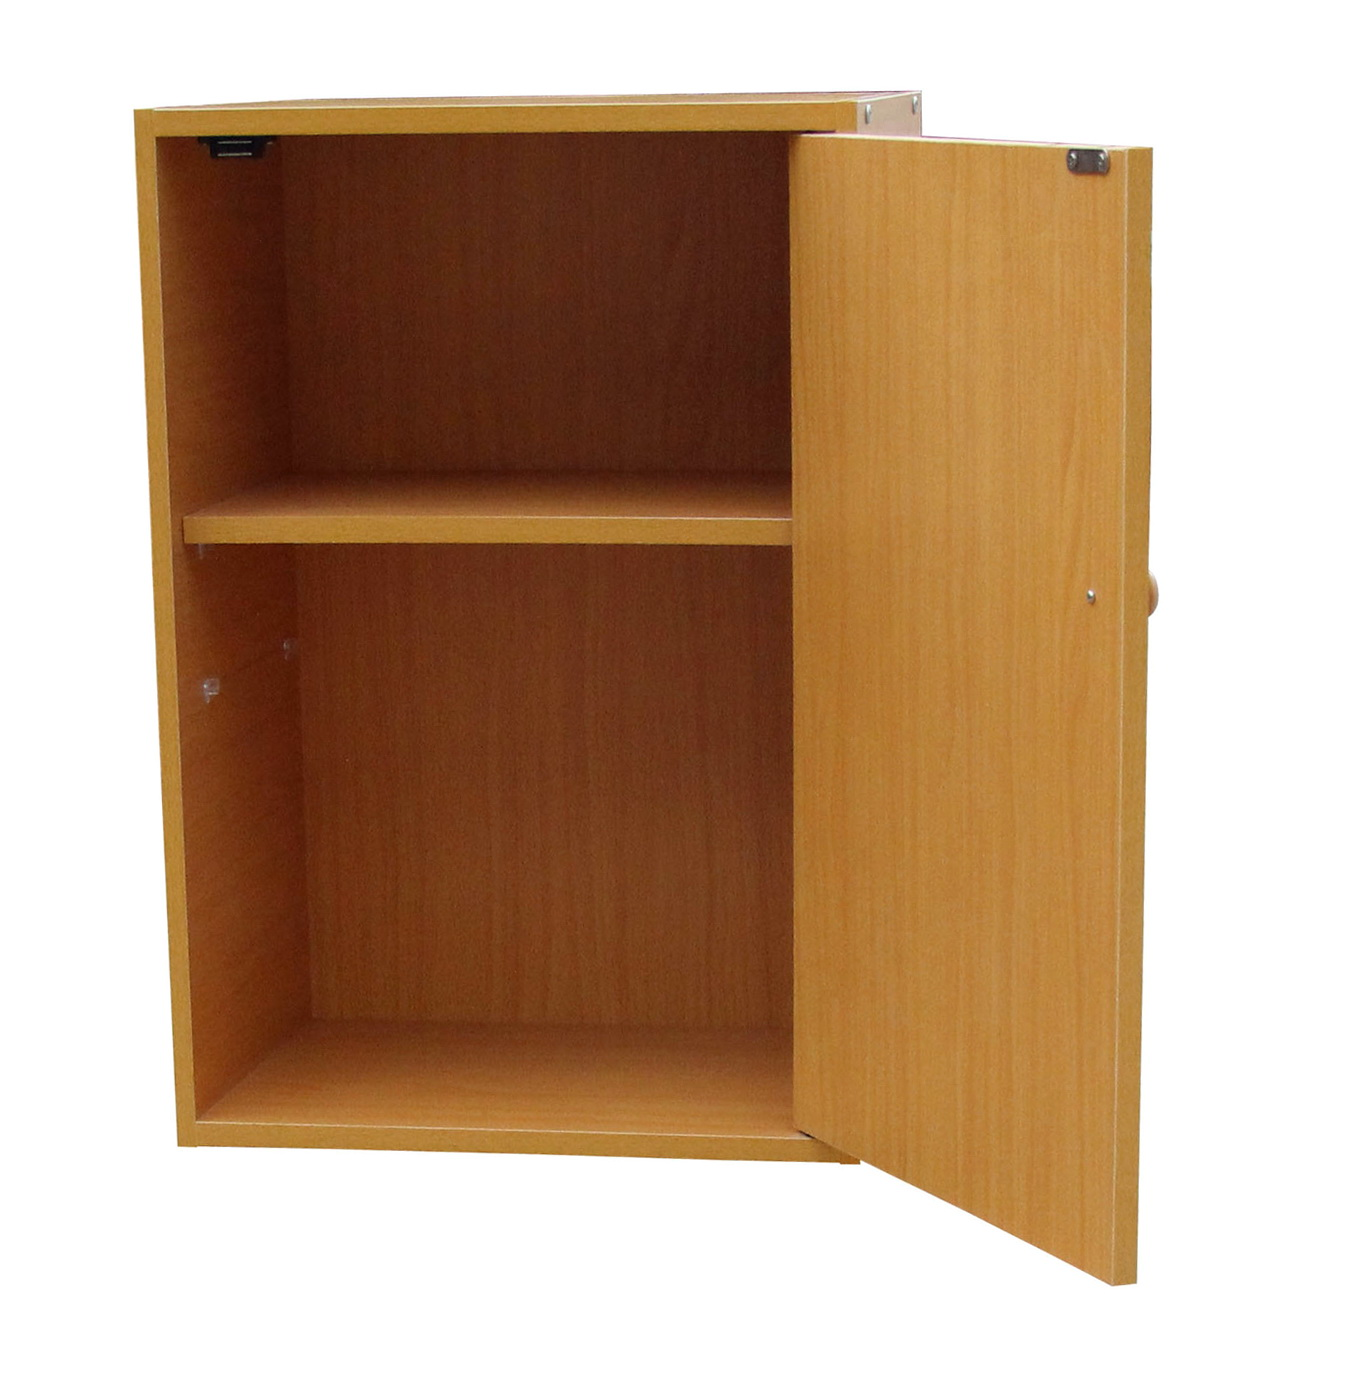 Two Shelf Bookcase With Doors